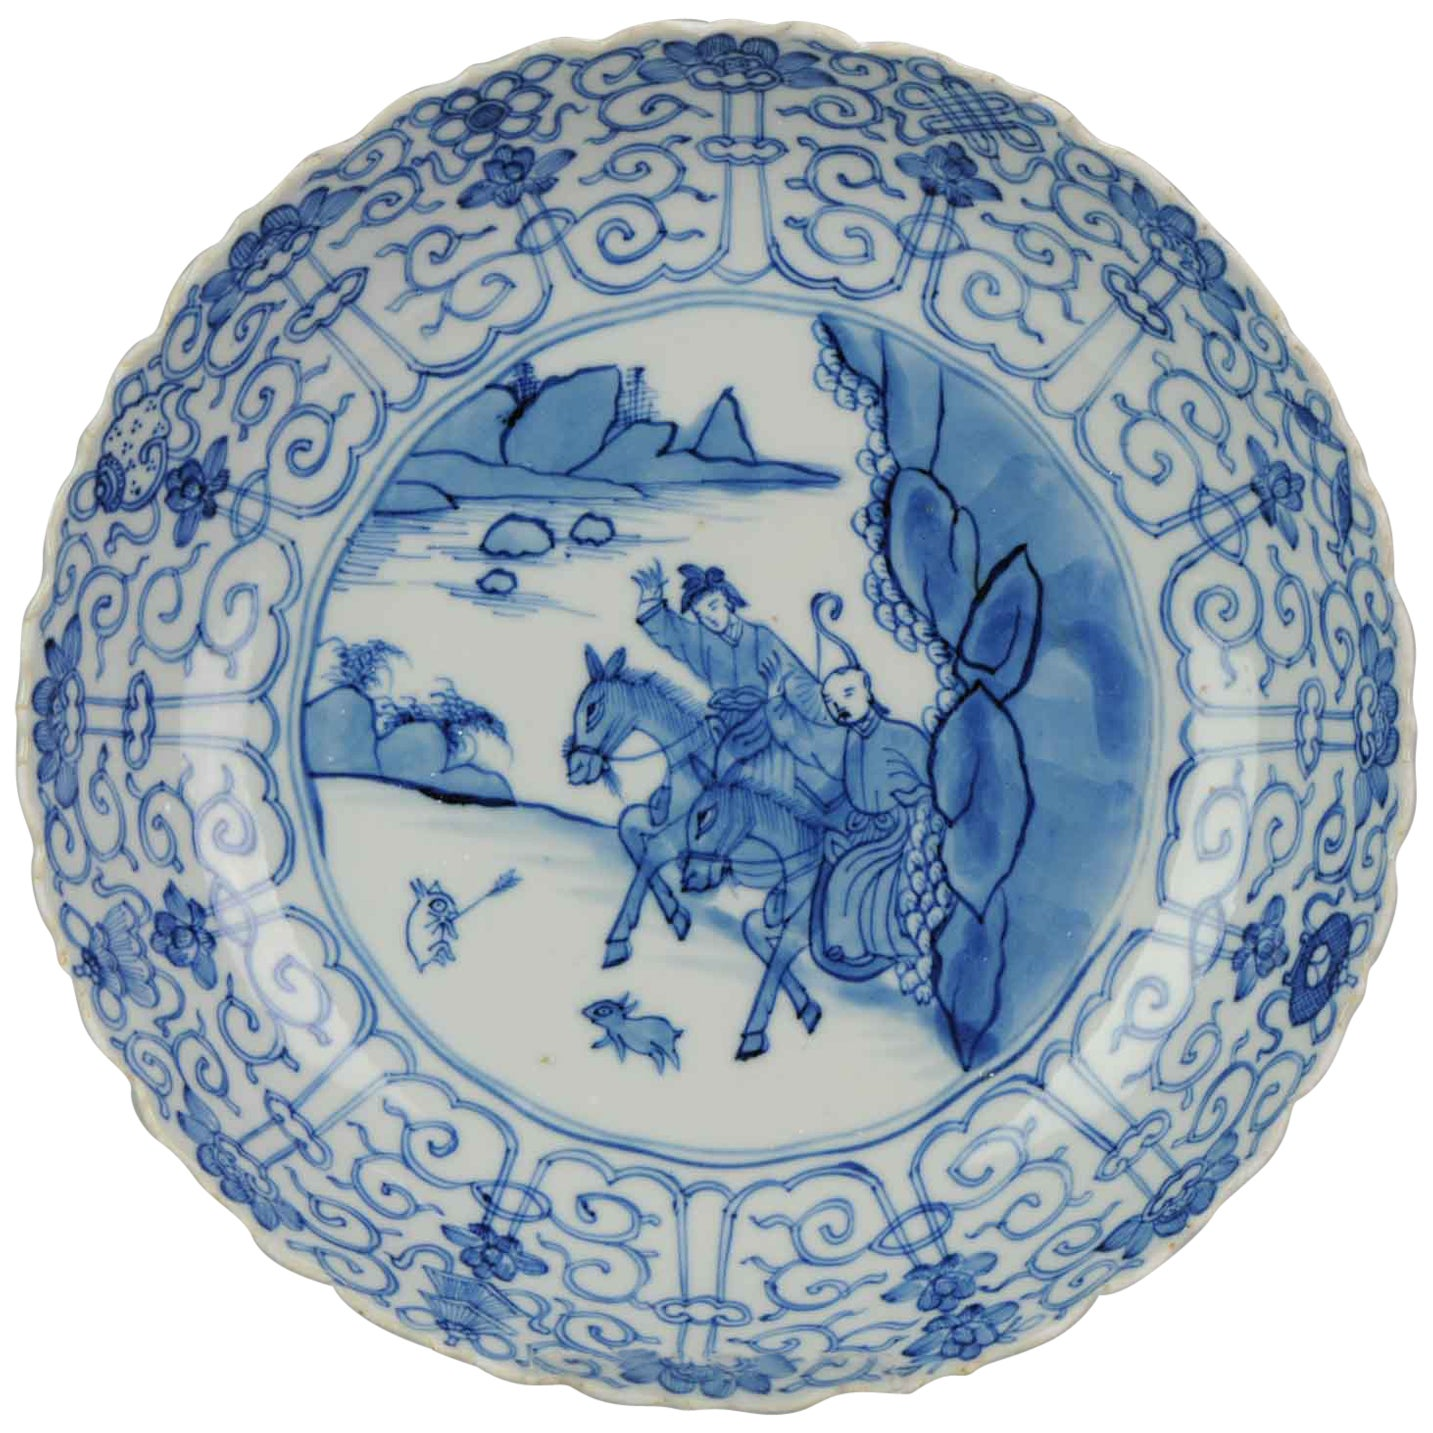 Antique Kangxi Chinese Porcelain Blue and White Dish Hunter Porcelain Marked